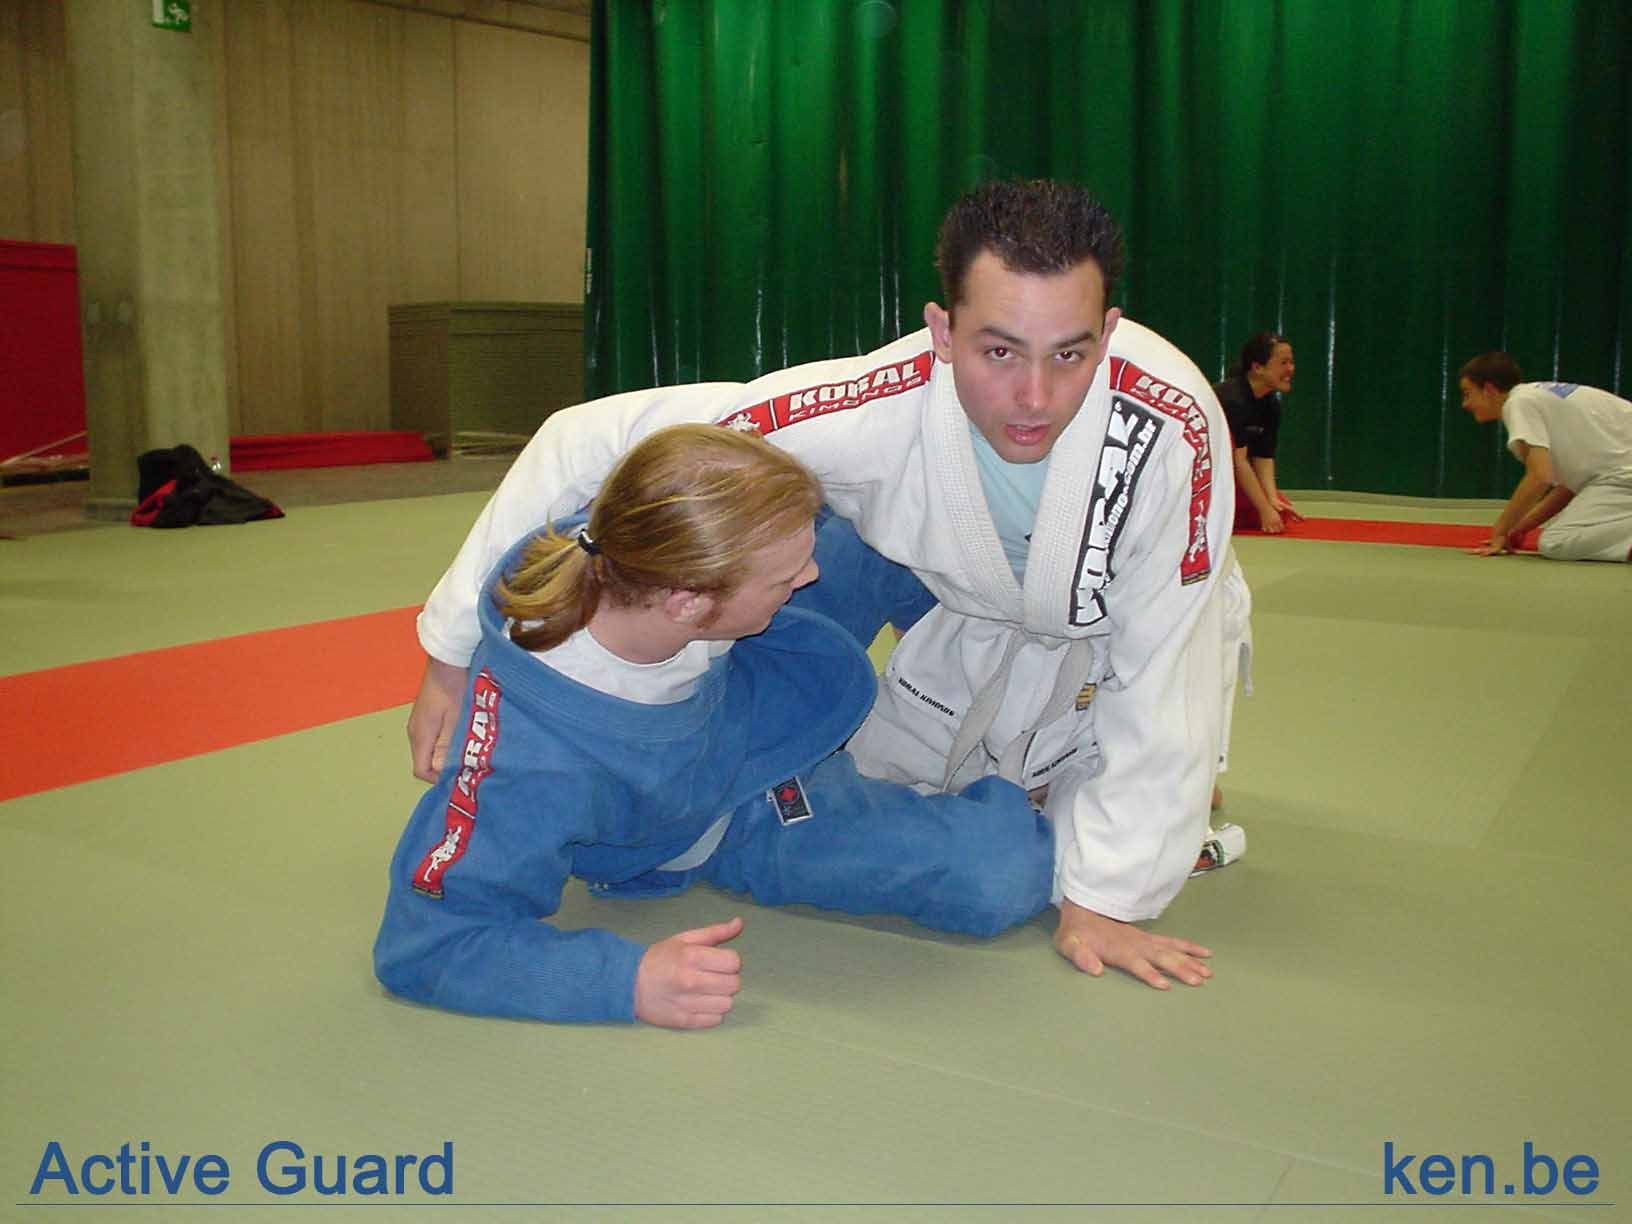 http://www.ken.be/gallery/Vechtsporten/Technieken/Ground%20Positions/active_guard.jpg